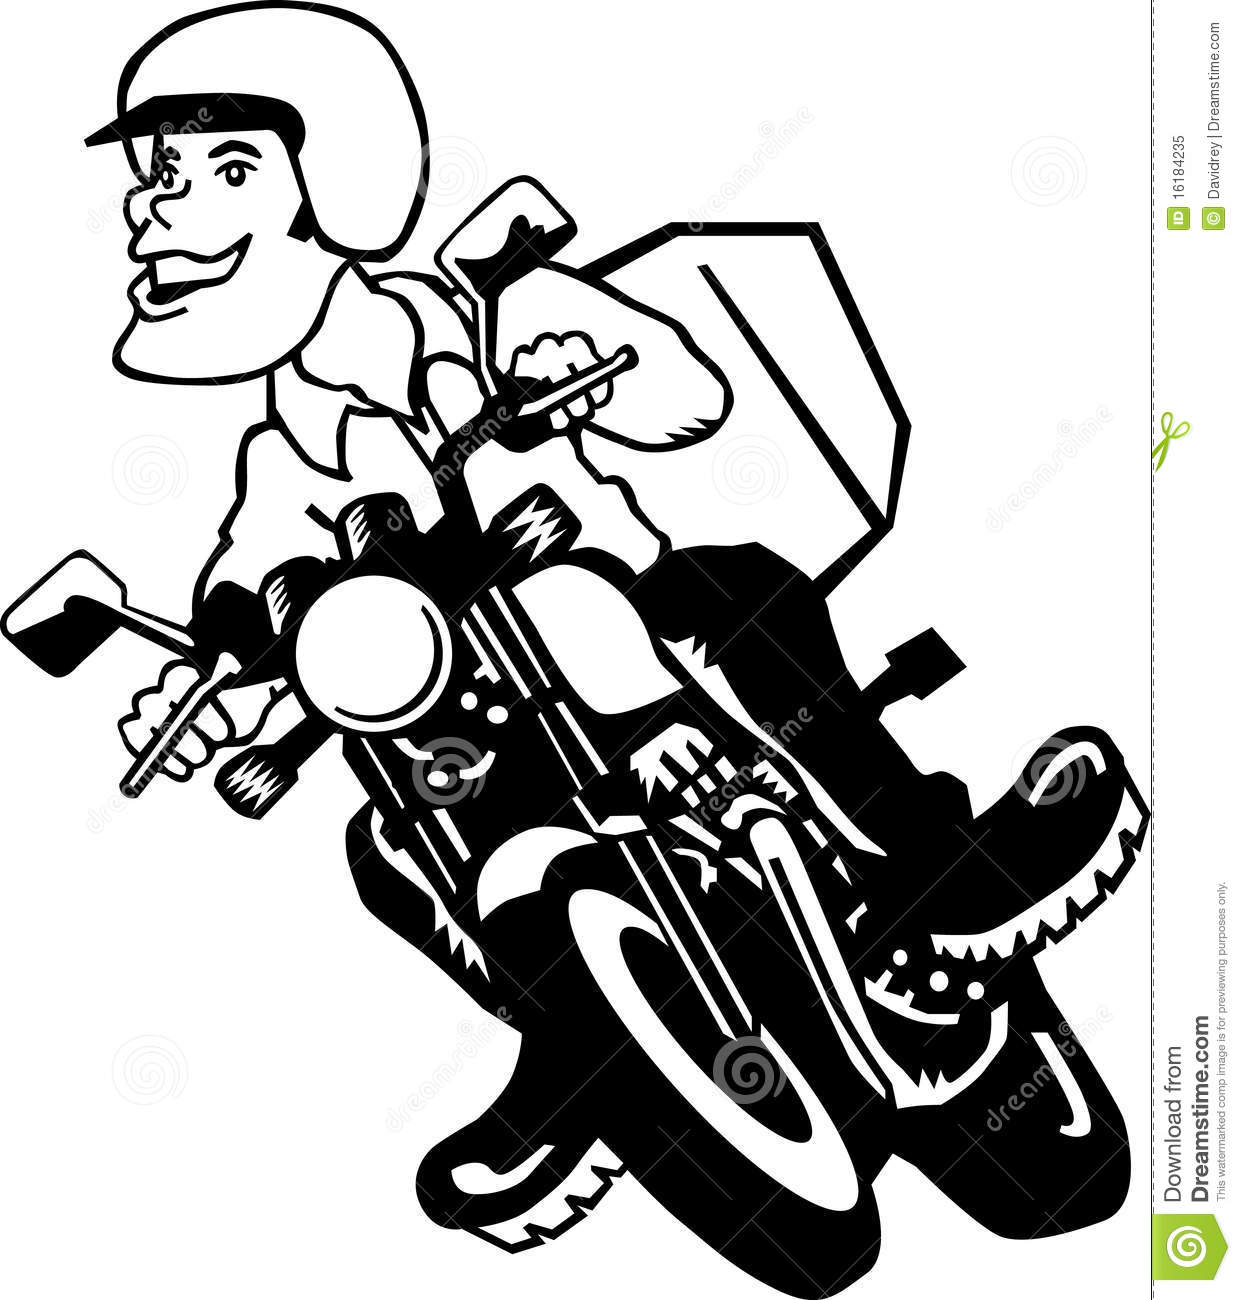 clipart delivery man - photo #44